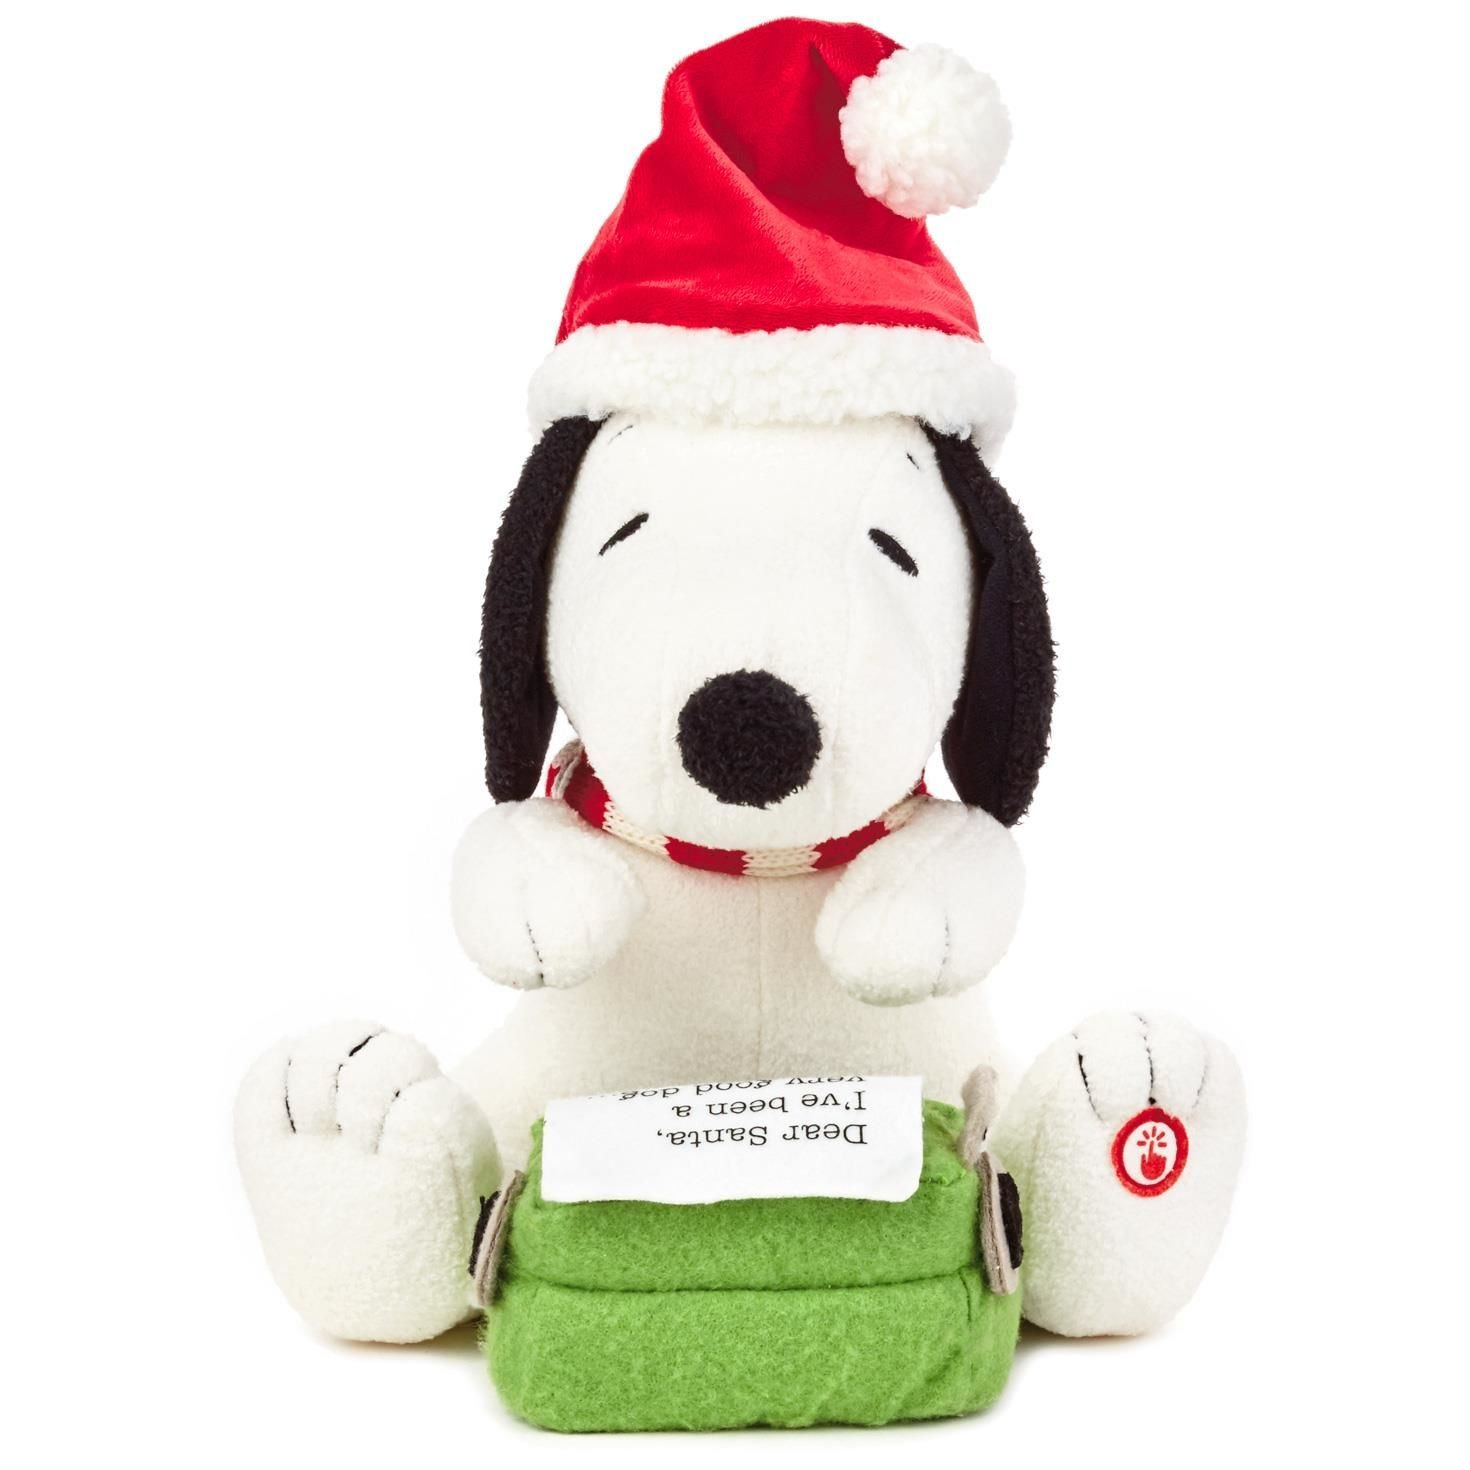 Hallmark Peanuts Snoopy S Letter To Santa Stuffed Animal With Sound